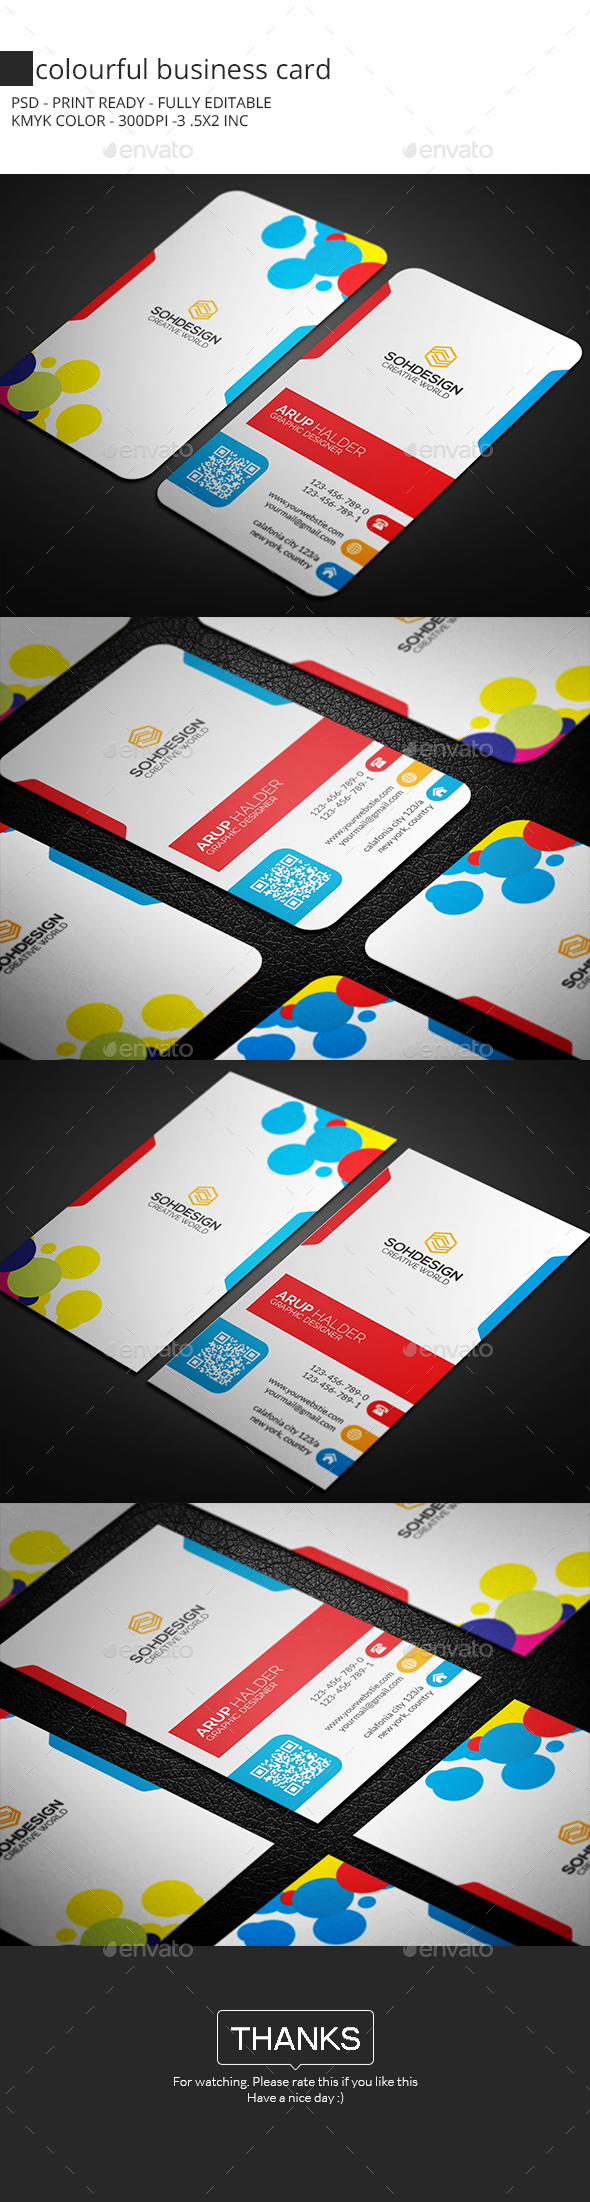 Colourful Business Card - Business Cards Print Templates